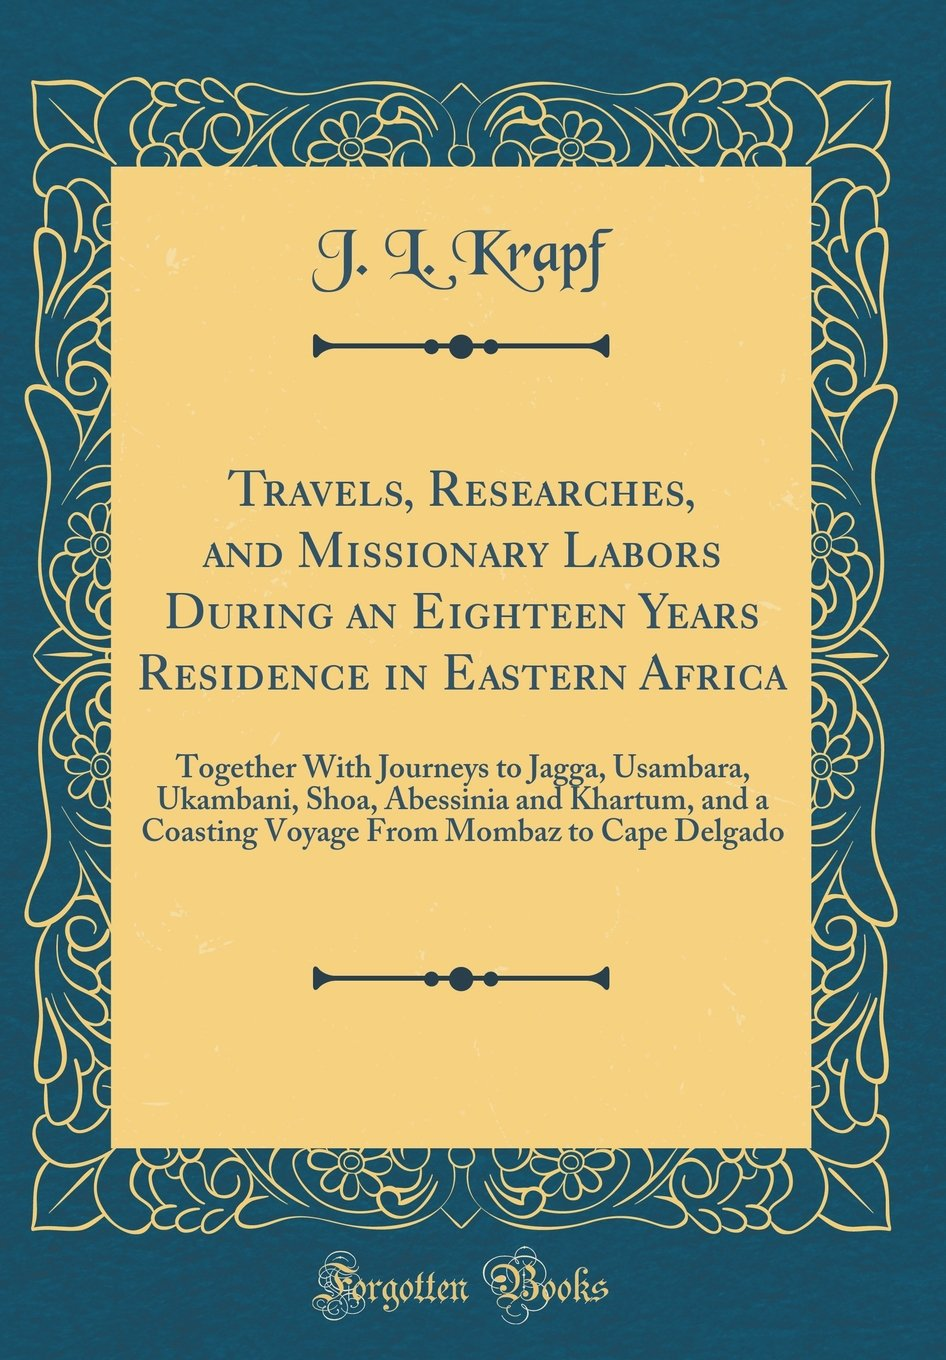 Travels, Researches, and Missionary Labors During an Eighteen Years Residence in Eastern Africa: Together With Journeys to Jagga, Usambara, Ukambani, ... From Mombaz to Cape Delgado (Classic Reprint) ebook